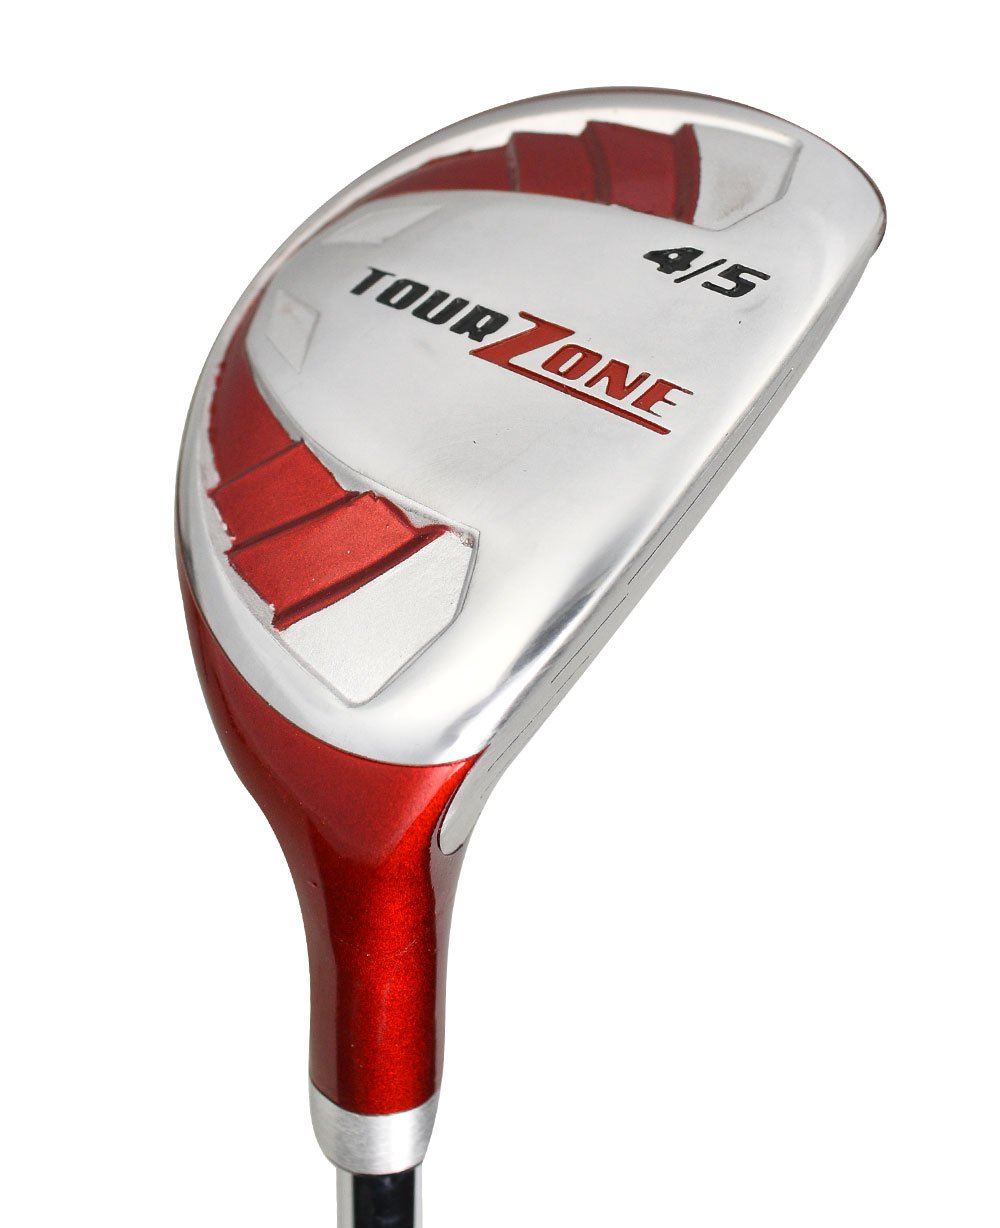 Tour Edge Golf Men's Tour Zone Box Set, Right Hand by Tour Edge Golf (Image #4)